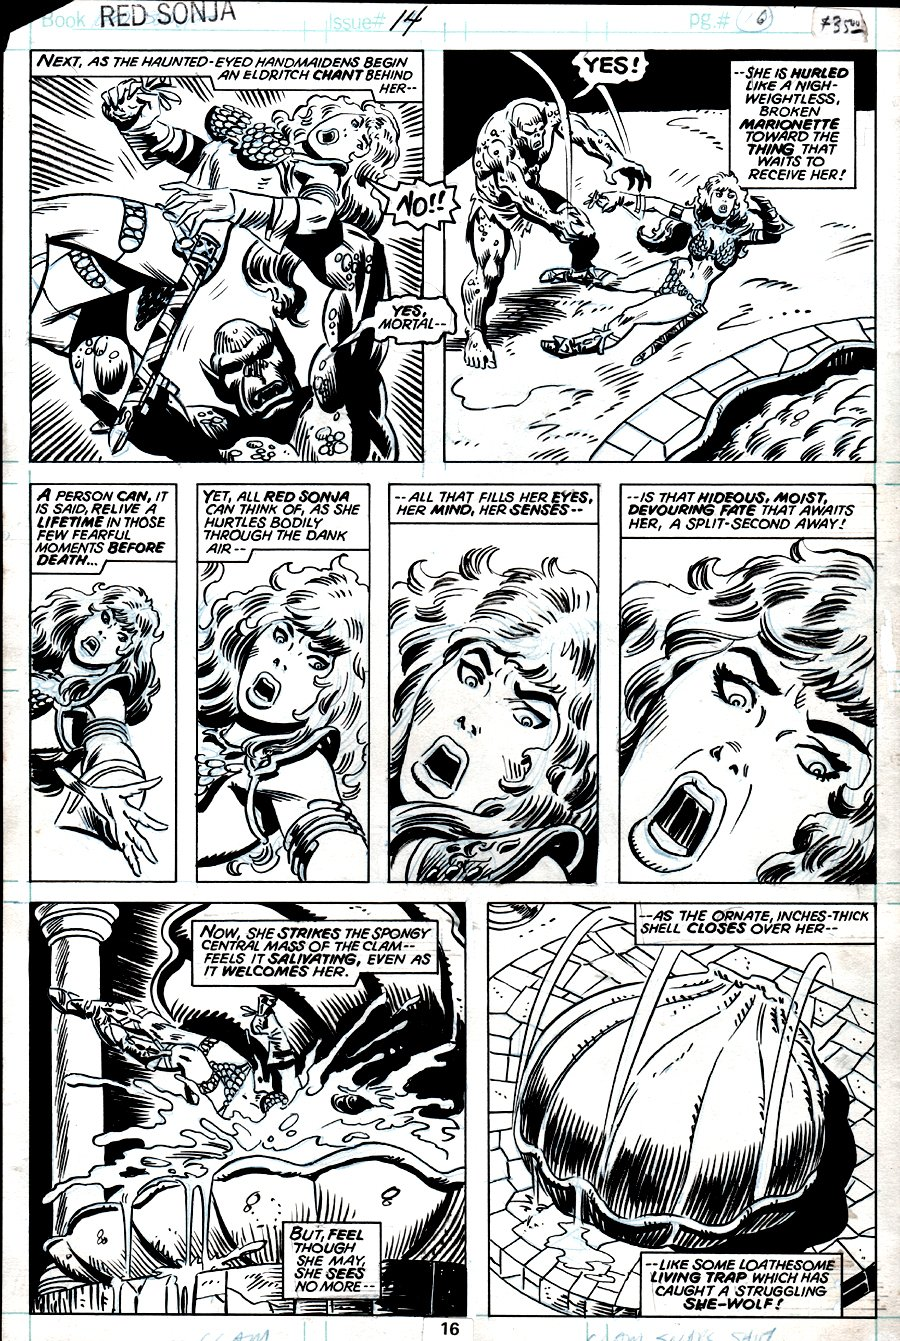 Red Sonja #14 p 16 (RED SONJA BATTLING IN 6 OF 7 PANELS!) 1978